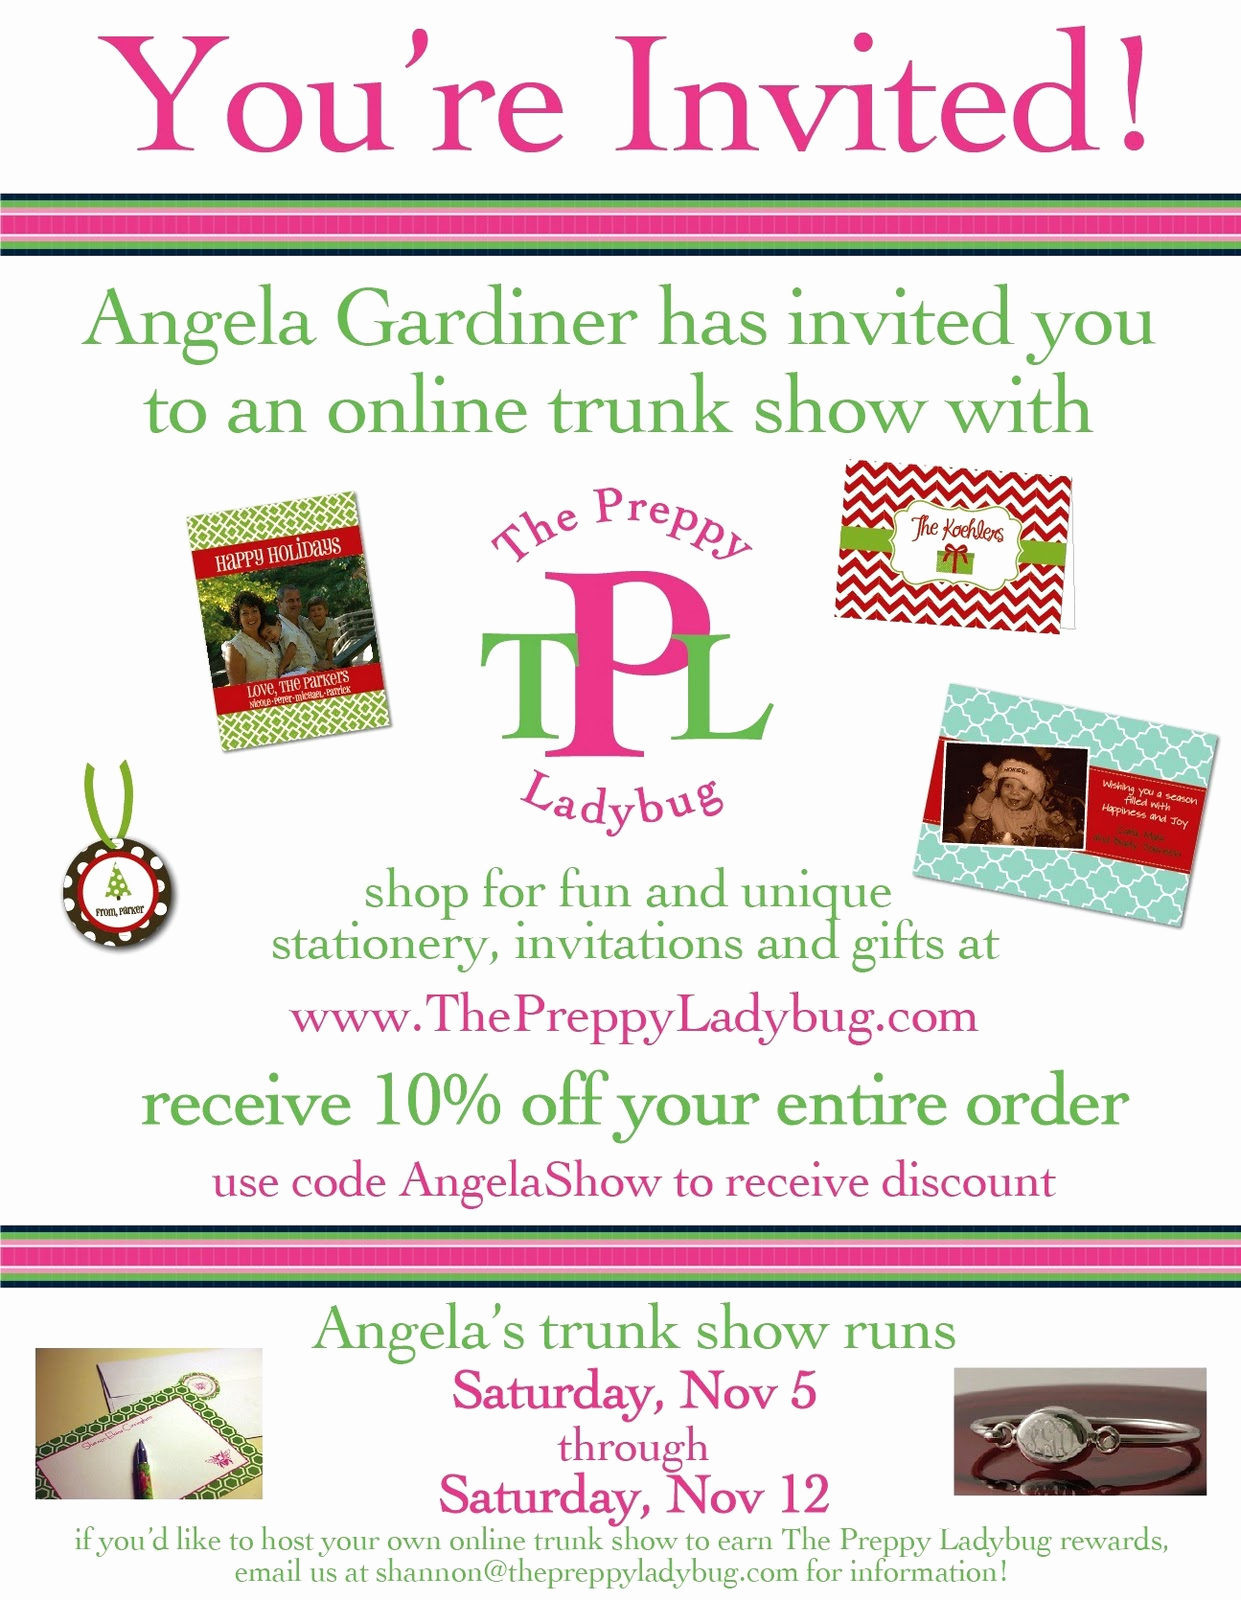 Jewelry Trunk Show Invitation Awesome Trunk Show Invitation Wording